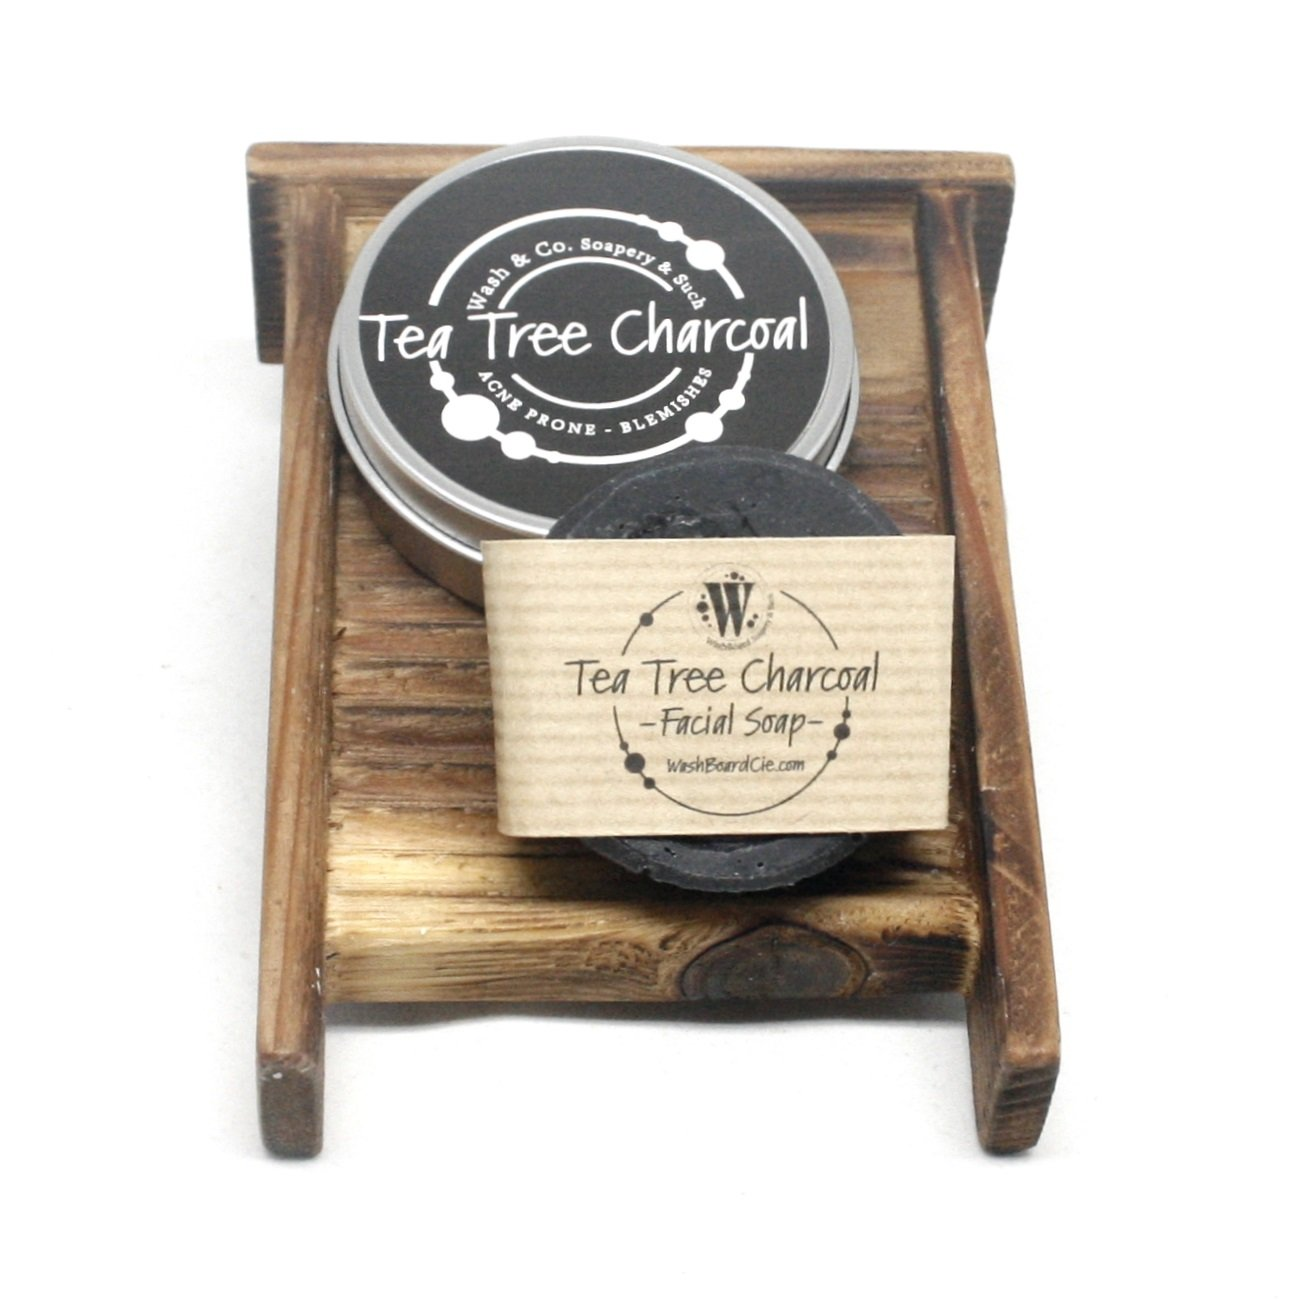 Tea Tree Charcoal Facial Soap in a Travel Tin